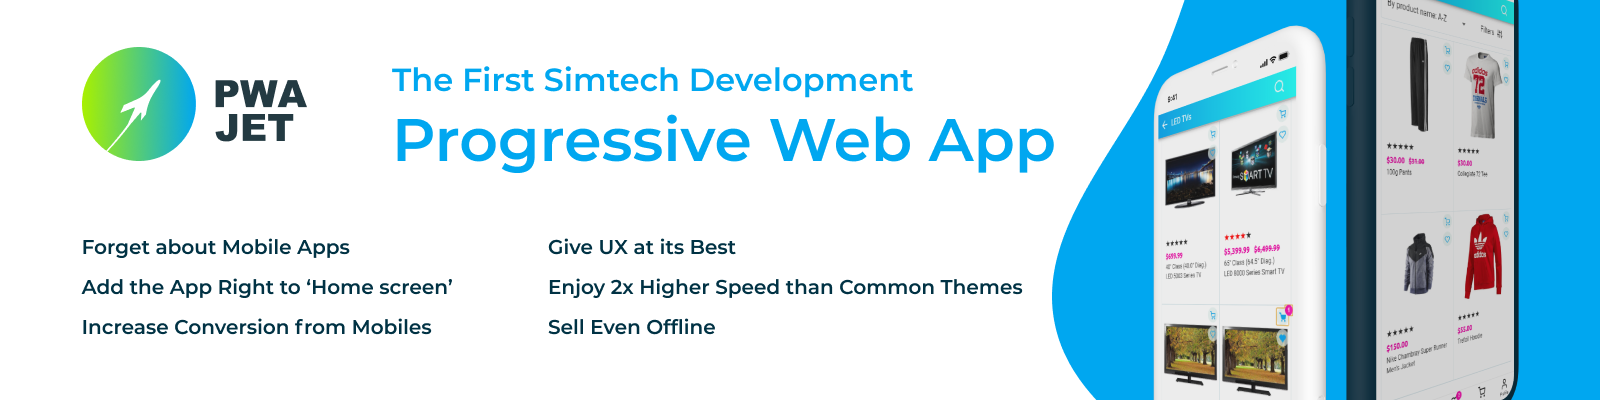 First progressive web application by Simtech Development